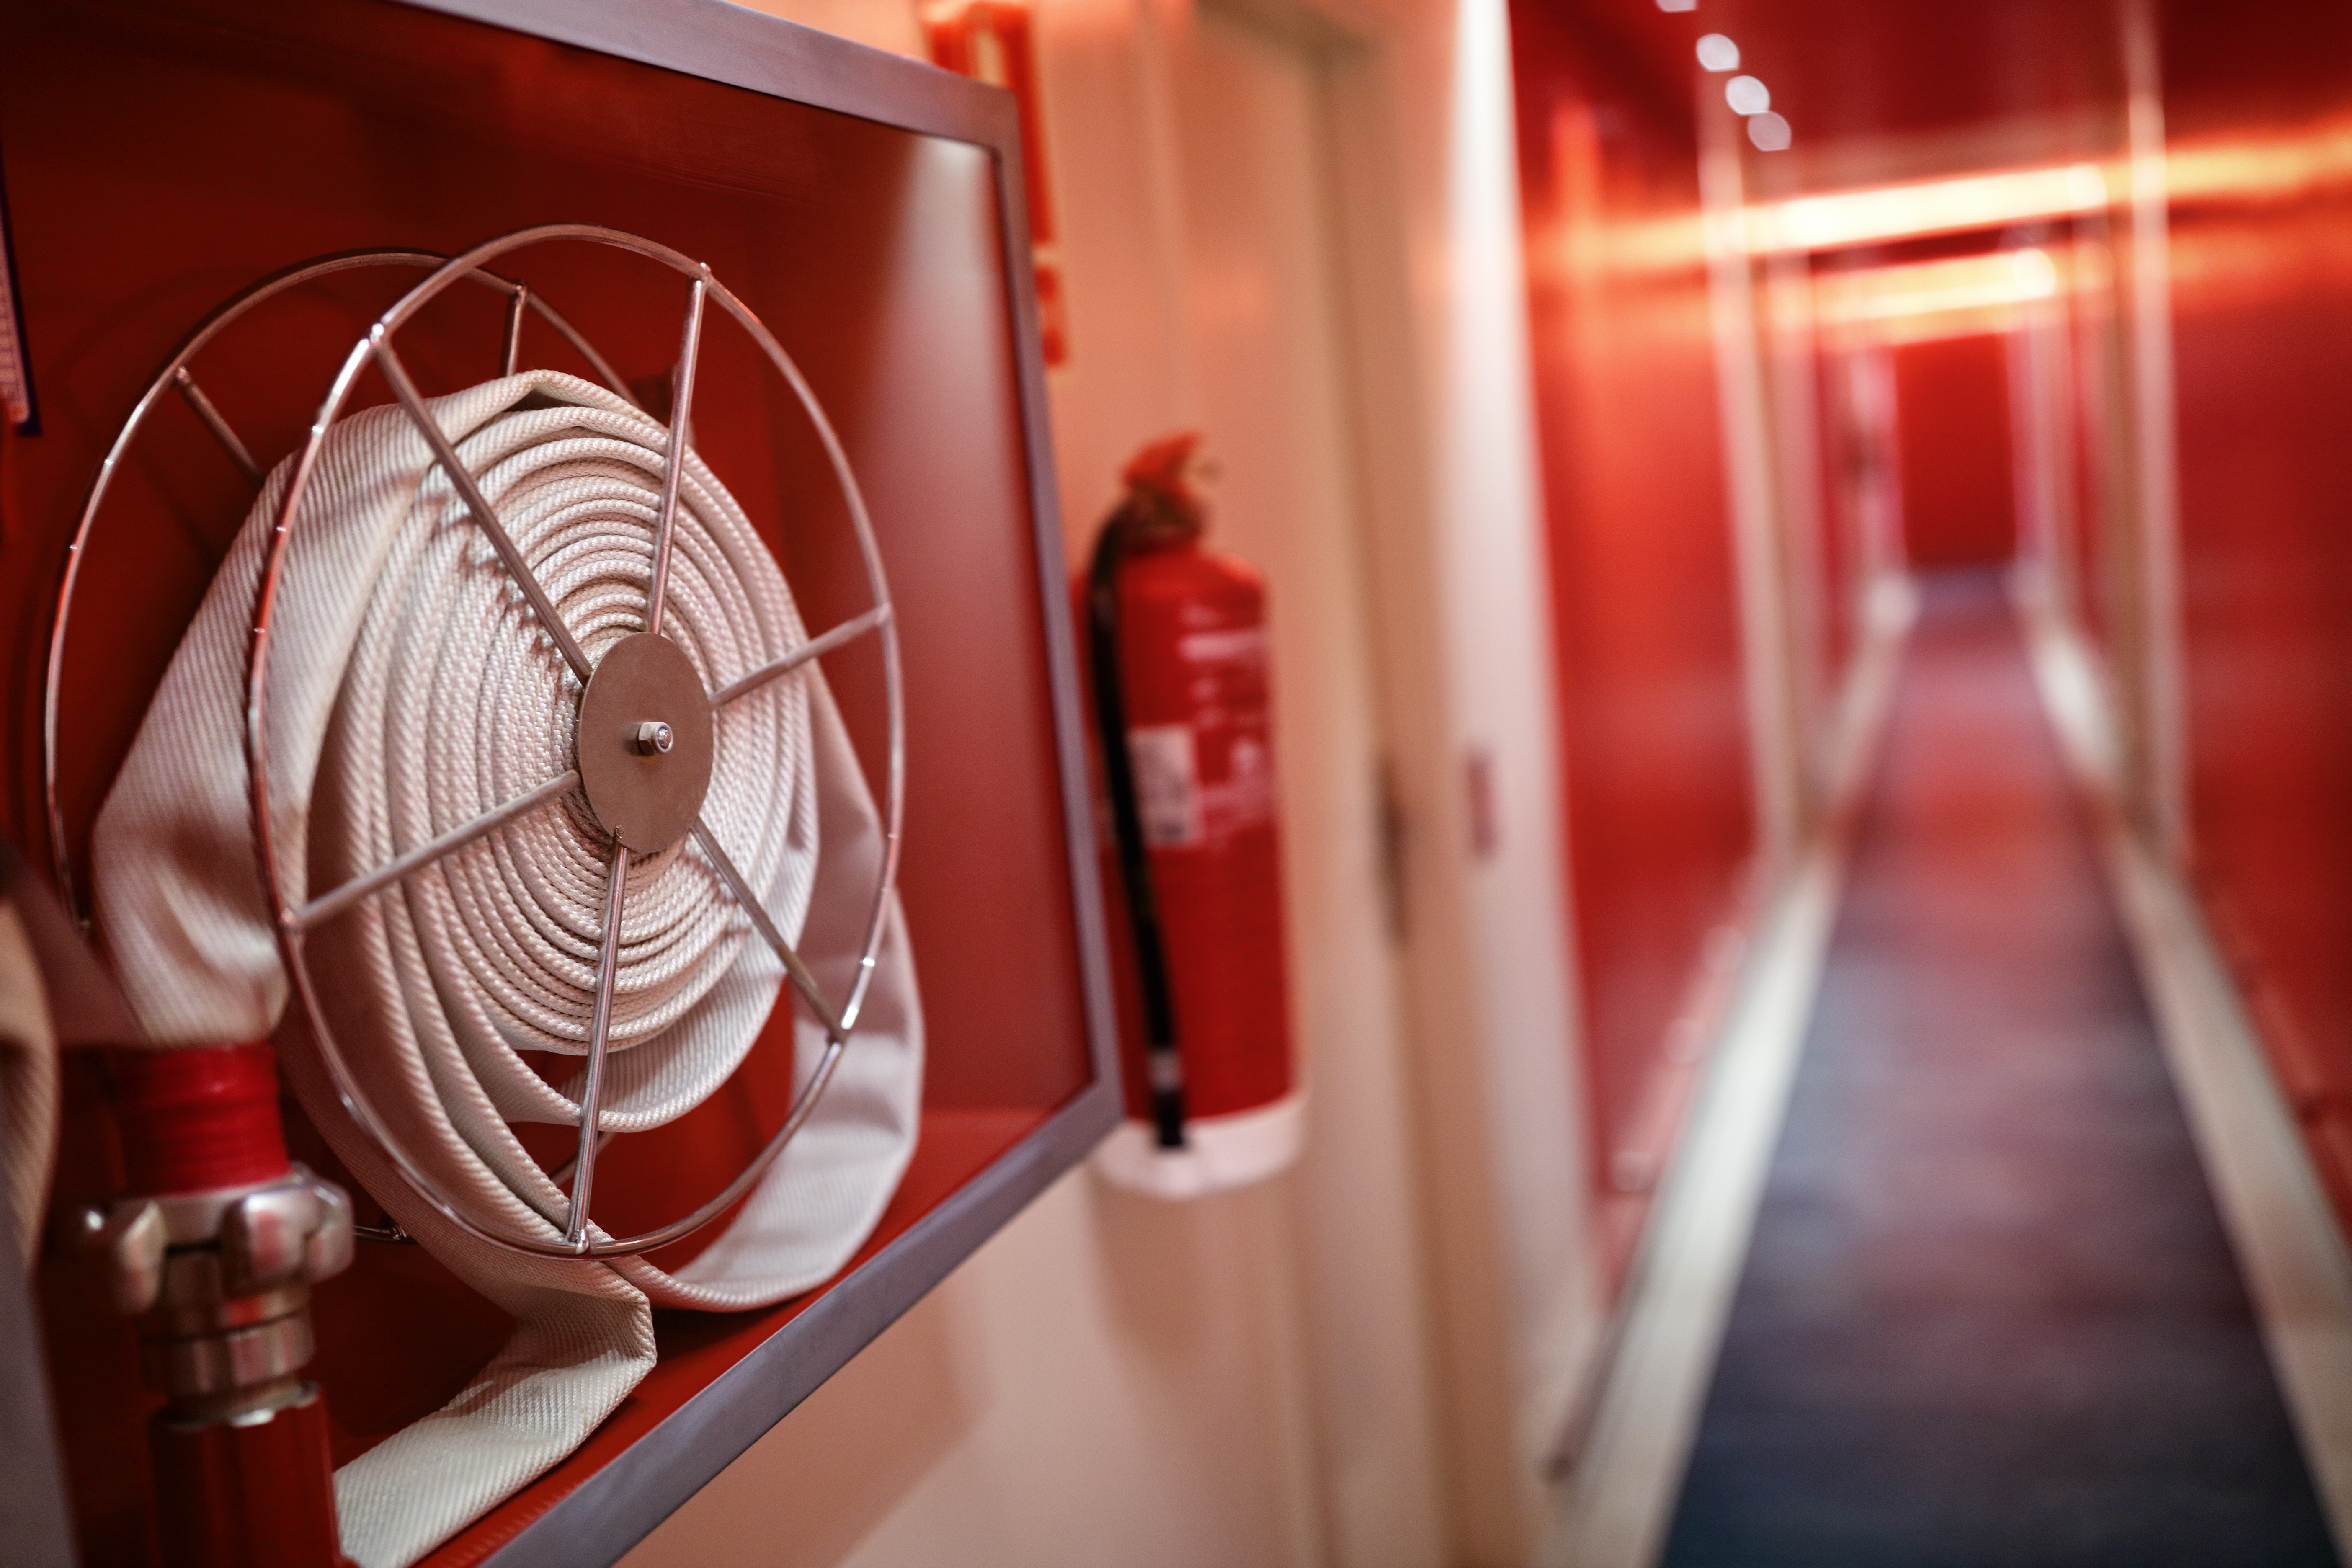 FIRE SAFETY PREPARATION TIPS FOR HOTELIERS